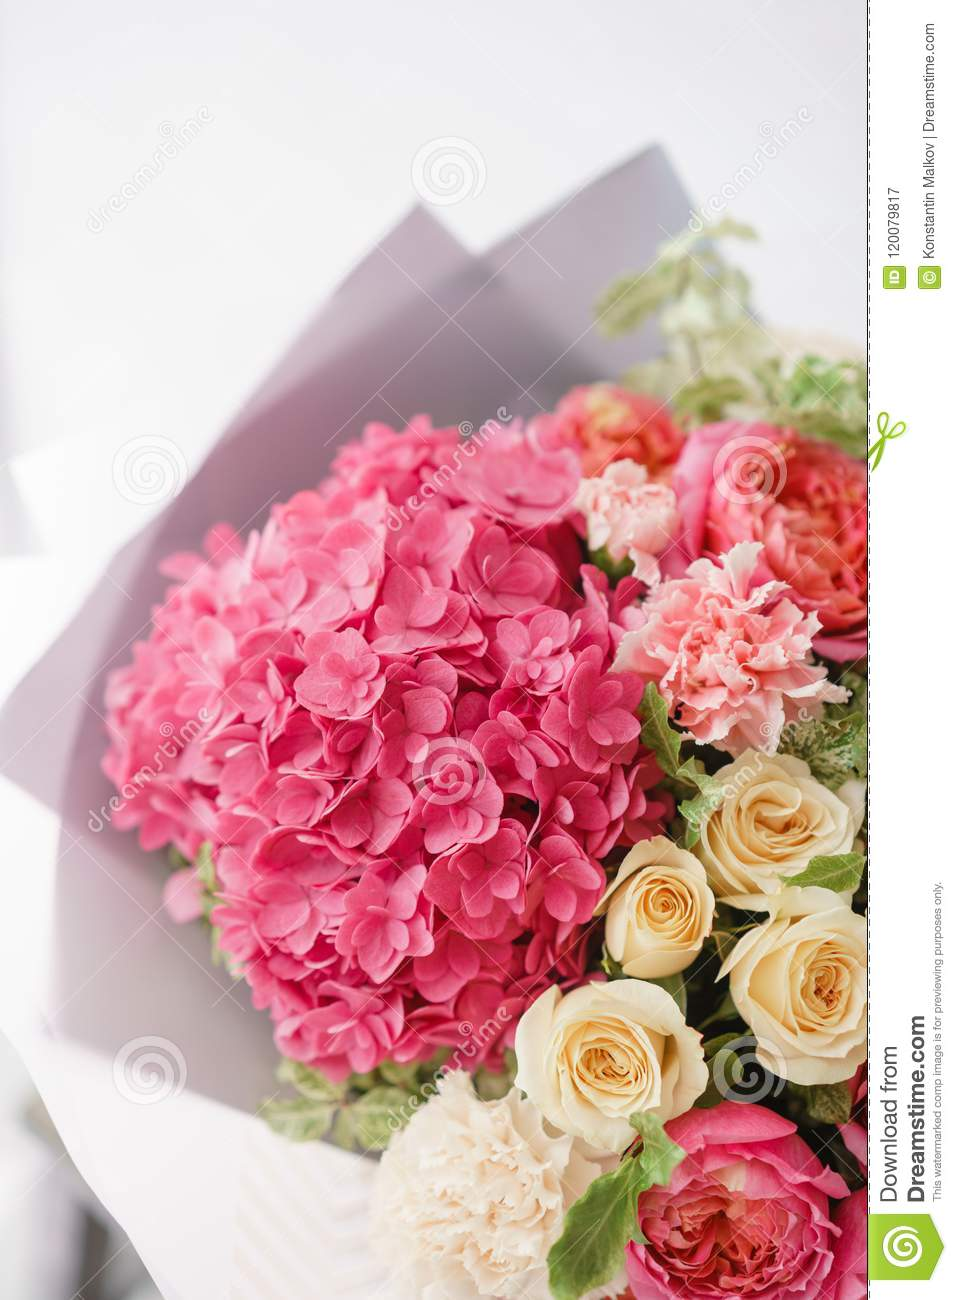 Beautiful spring bouquet flower arrangement with hydrangea and download beautiful spring bouquet flower arrangement with hydrangea and peonies roses color light pink izmirmasajfo